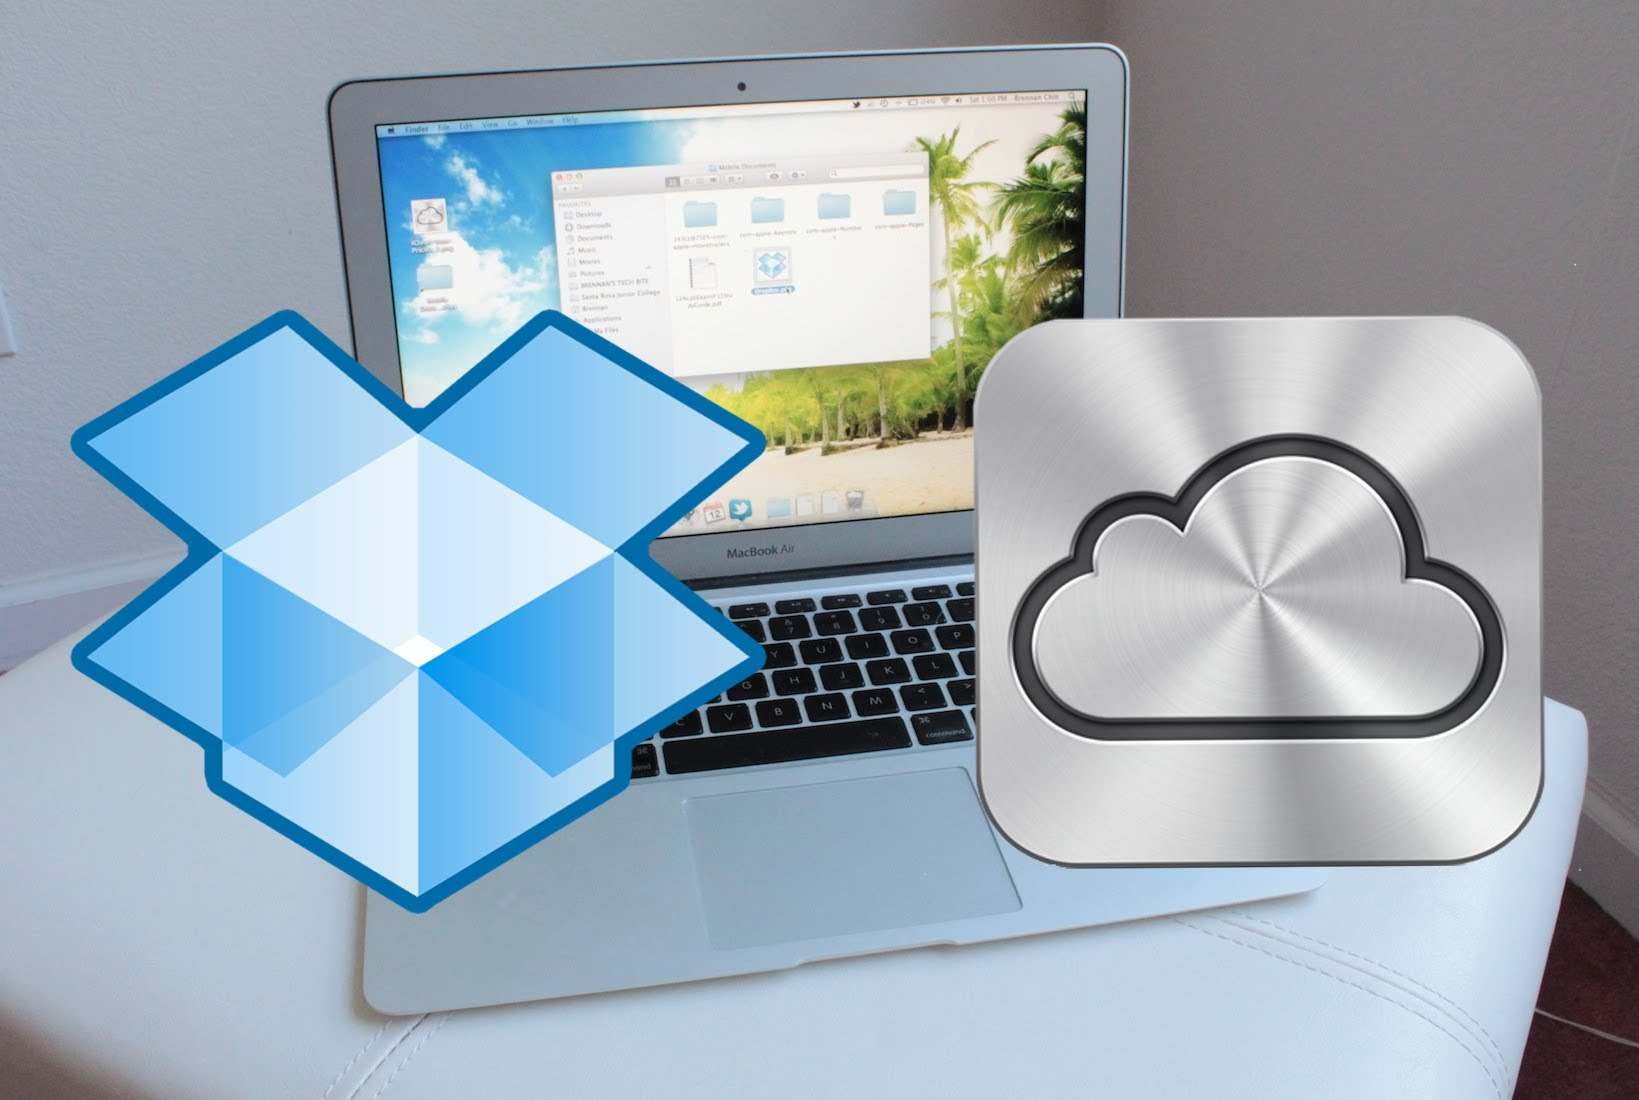 How to get backed up files from icloud